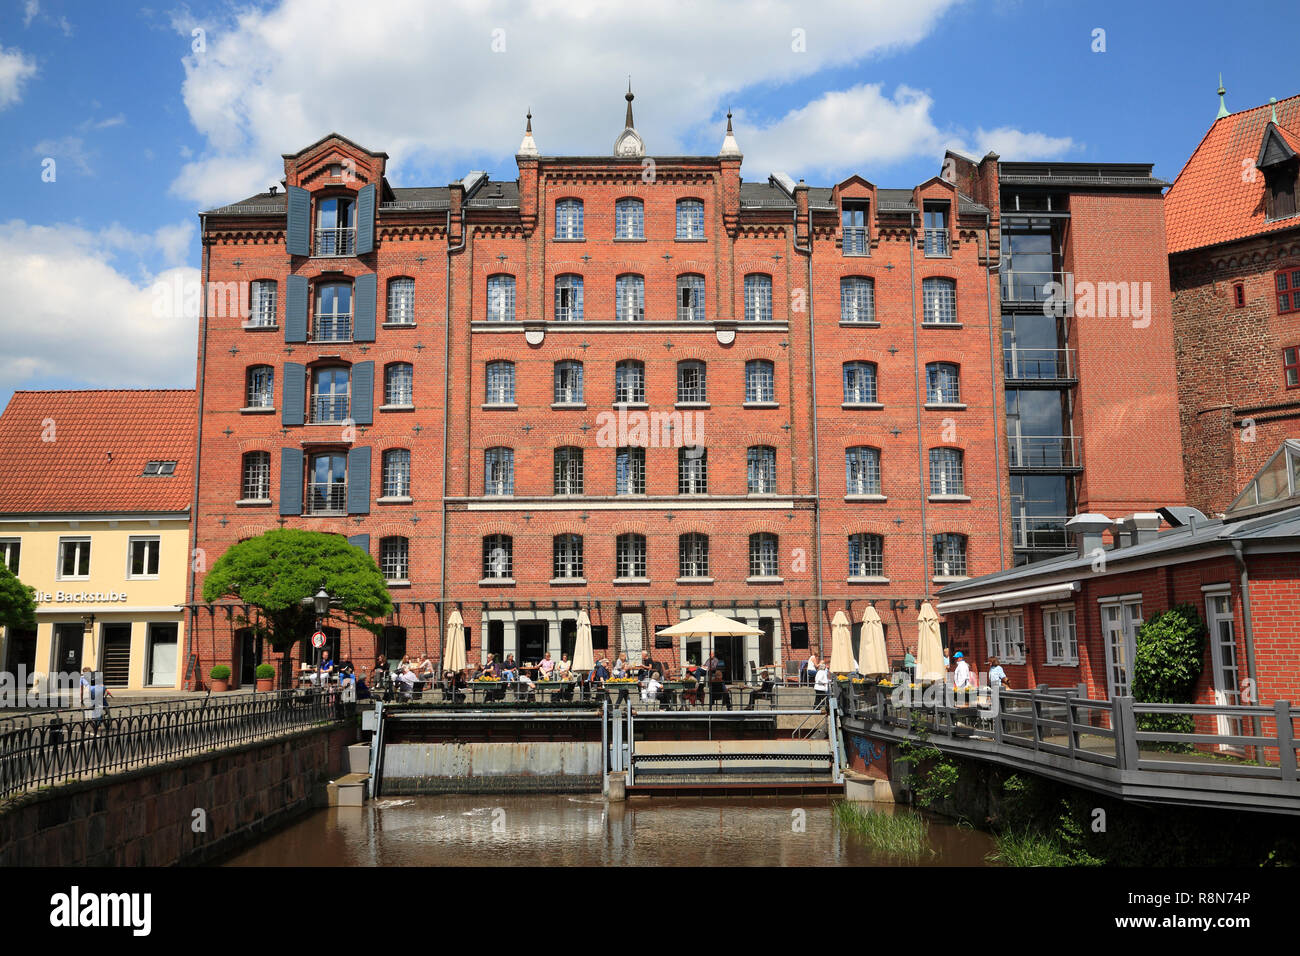 OLd watermill (Abtsmühle)in the old harbour quarter at river Ilmenau,  Lueneburg, Lüneburg,  Lower Saxony, Germany, Europe - Stock Image